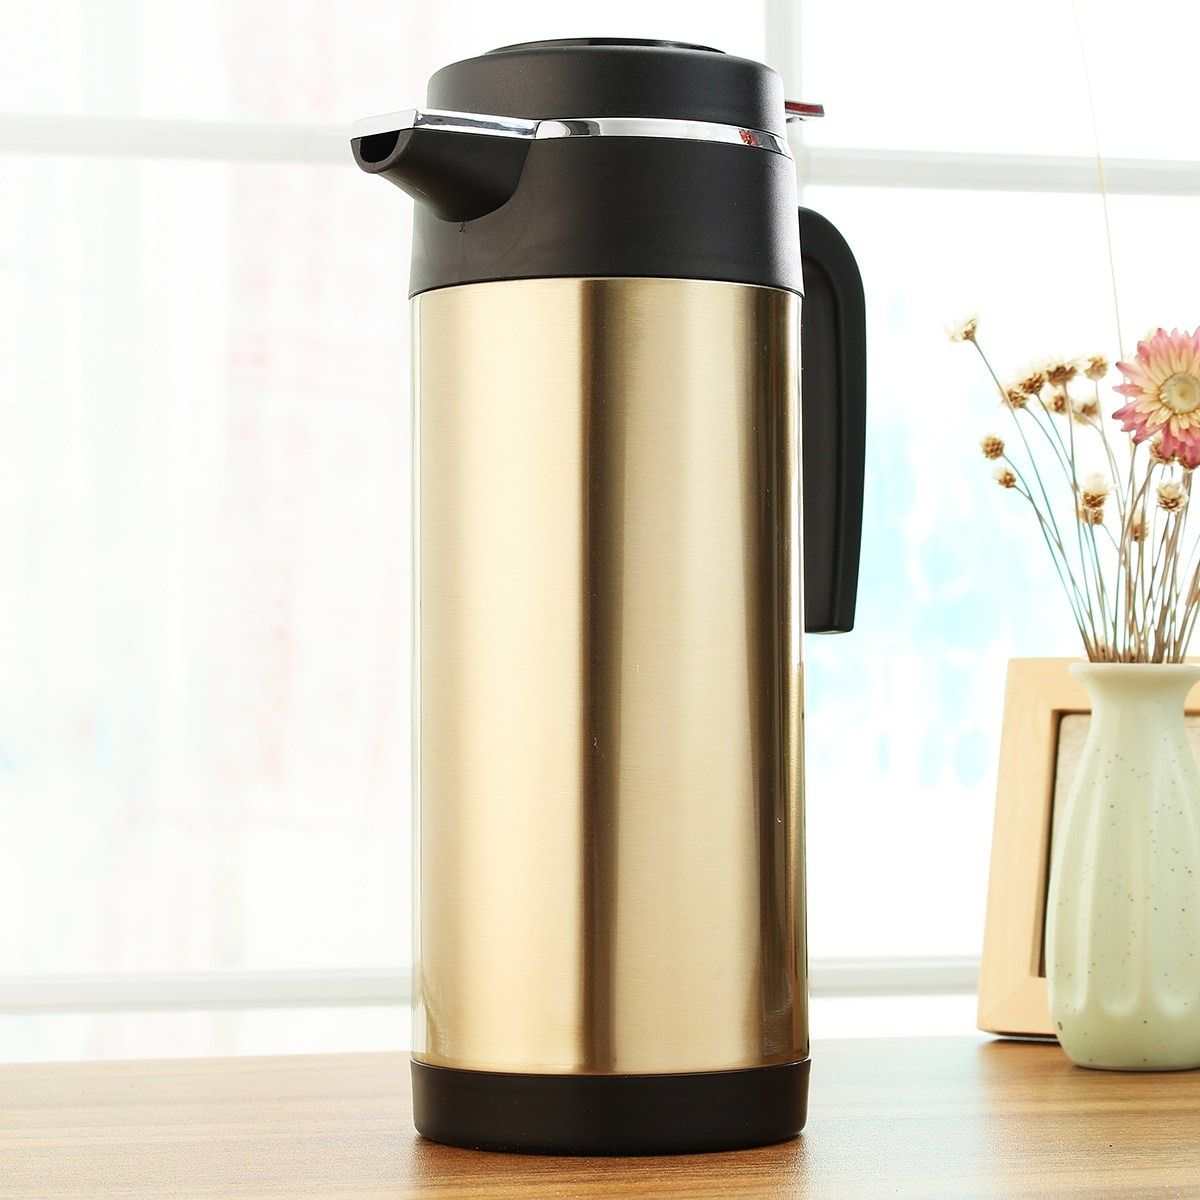 KROAK 1200ml HOT 12/24V Car Travel Auto Stainless Steel Electric In-Car Kettle Travel Heating Water Bottle